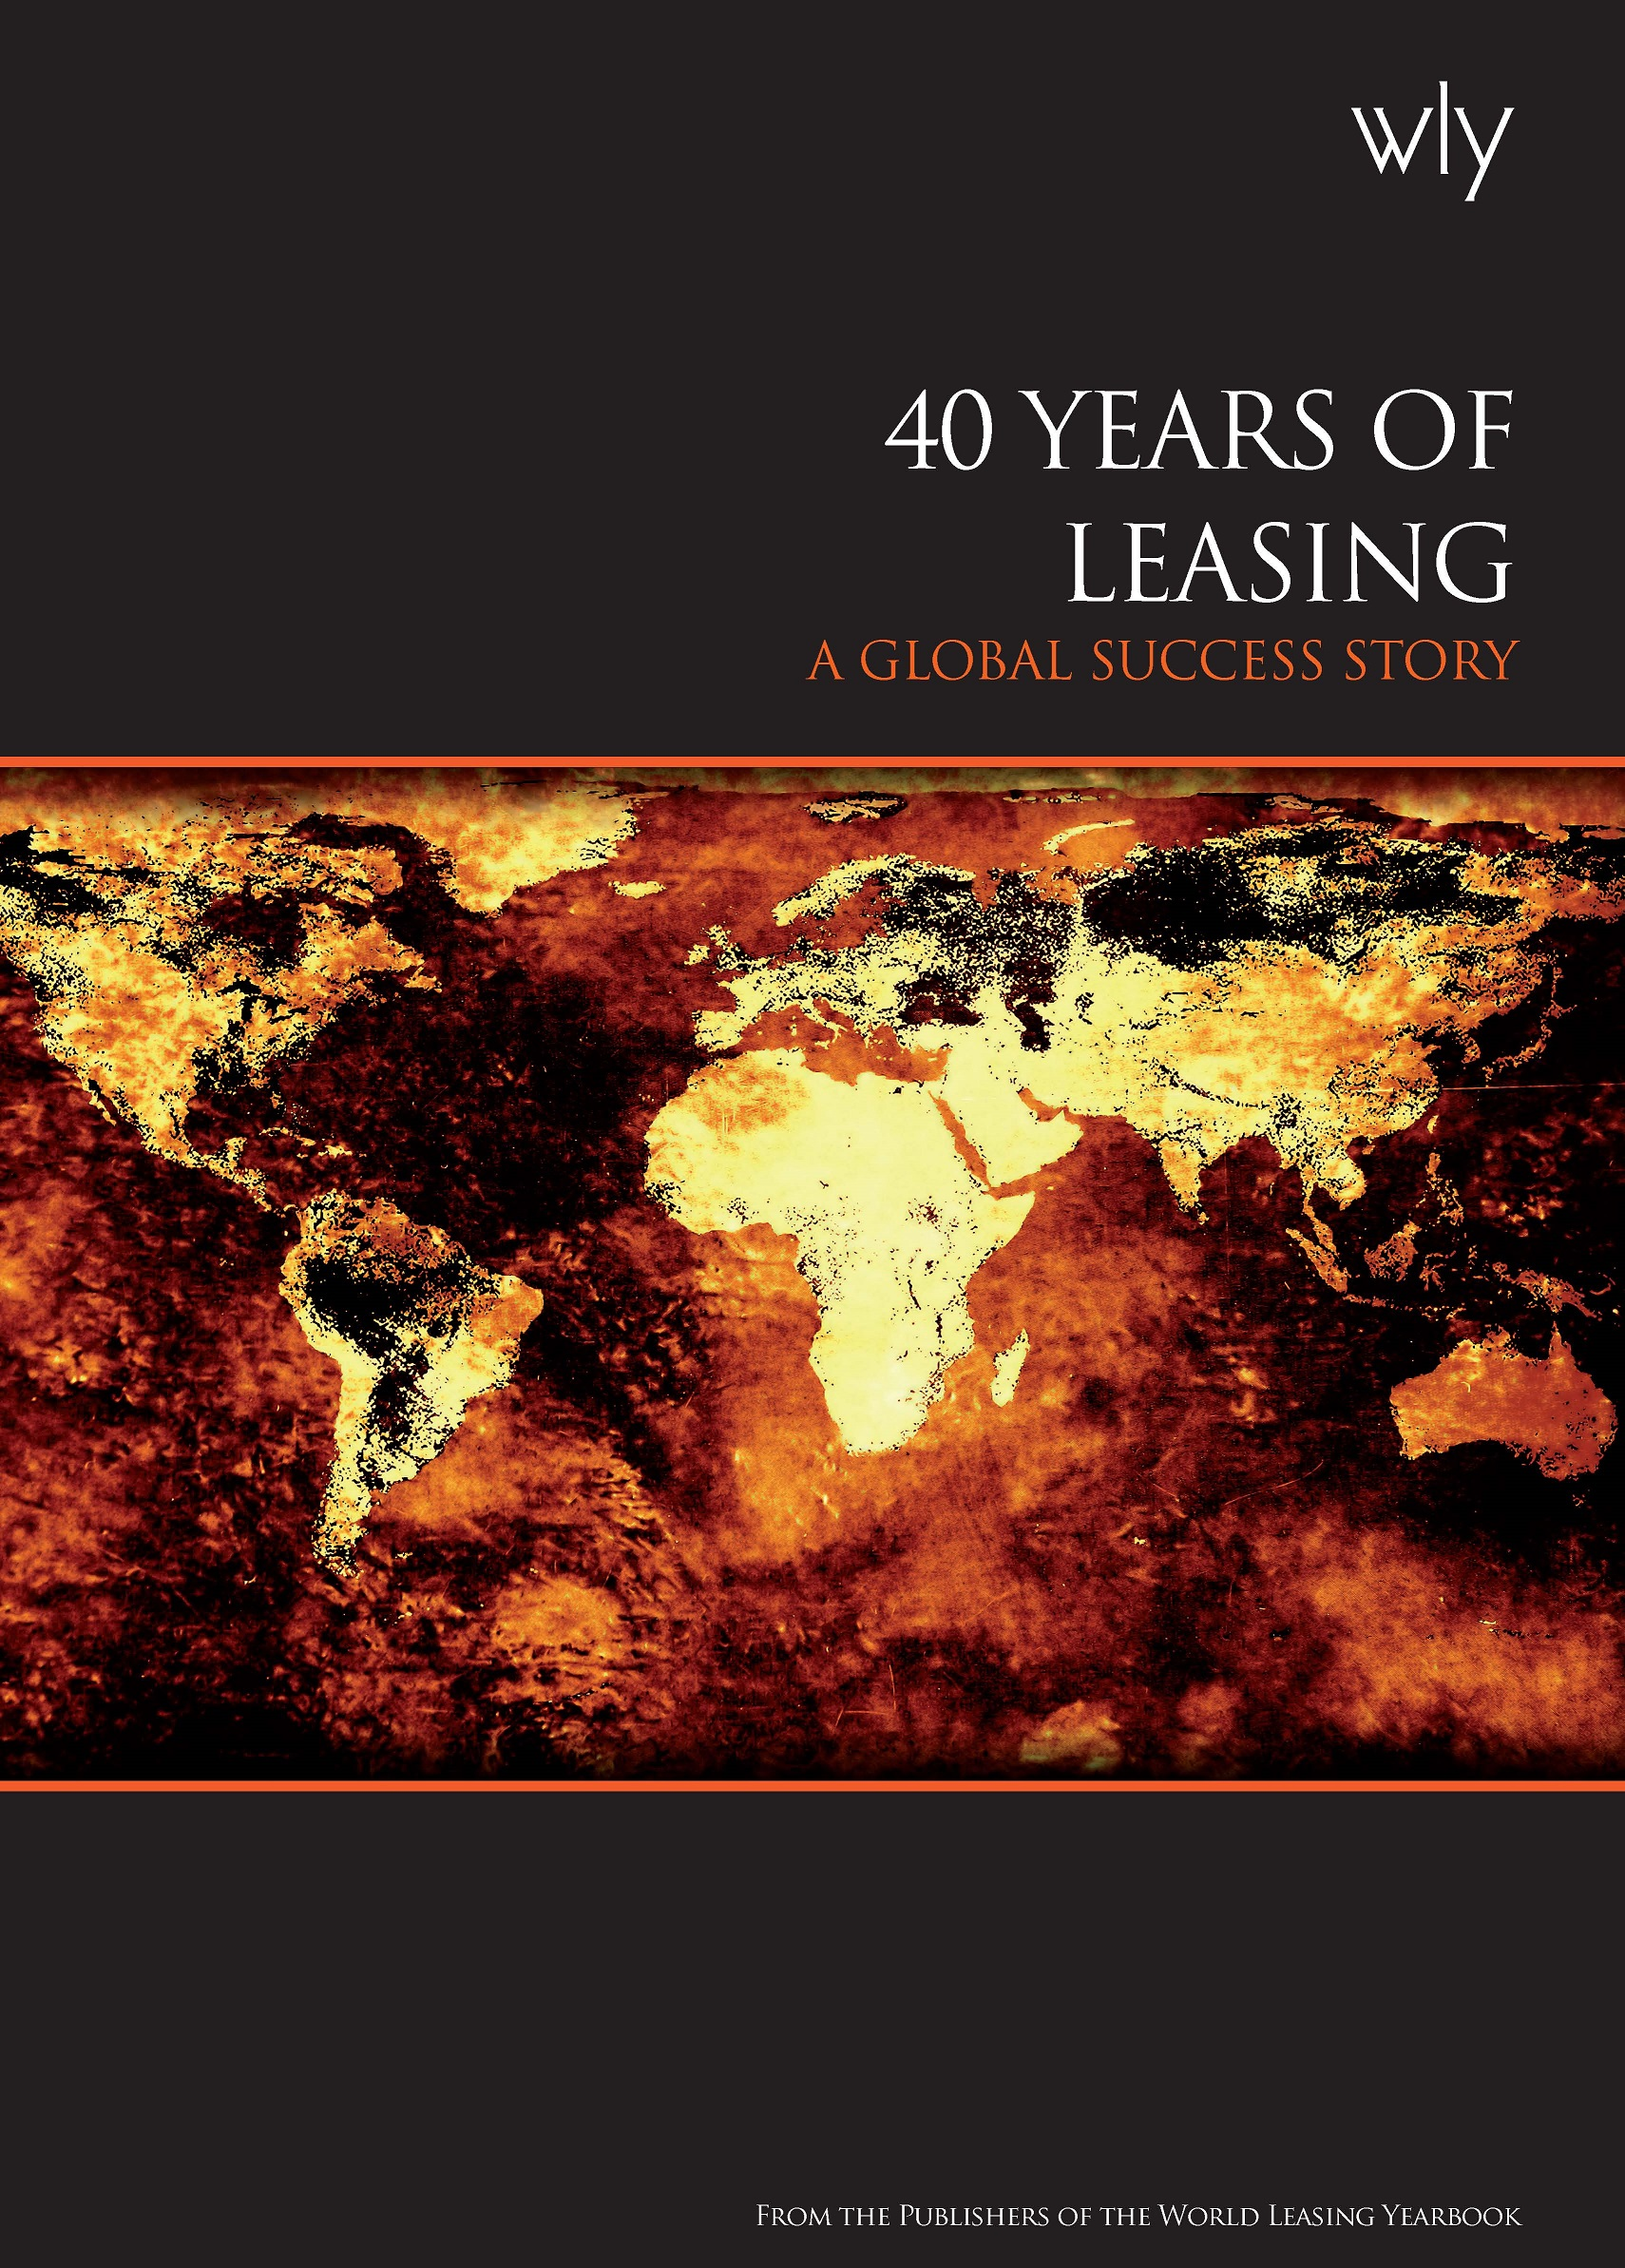 40 Years of Leasing: A global success story